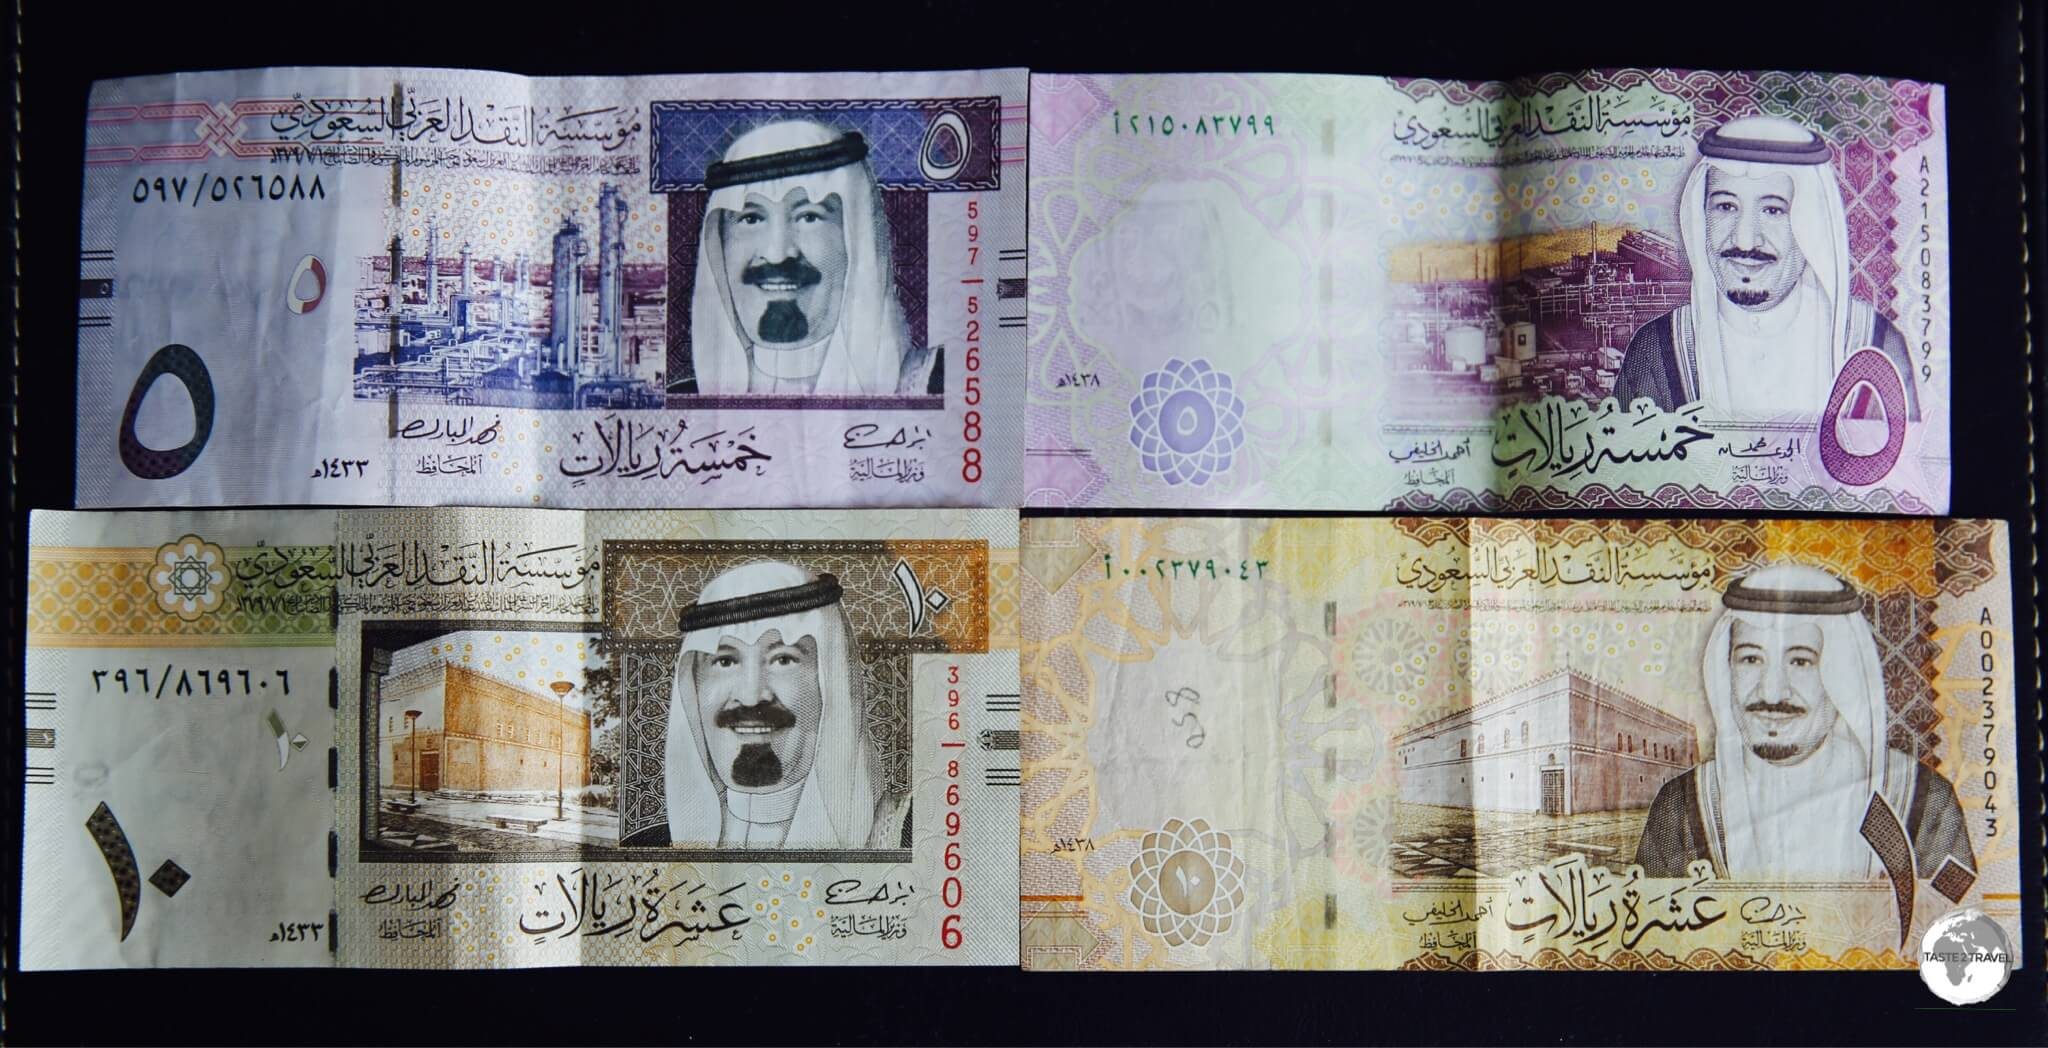 The two riyal note series in circulation – the old series (left side) featuring the portrait of King Abdullah and the current series featuring King Salman.